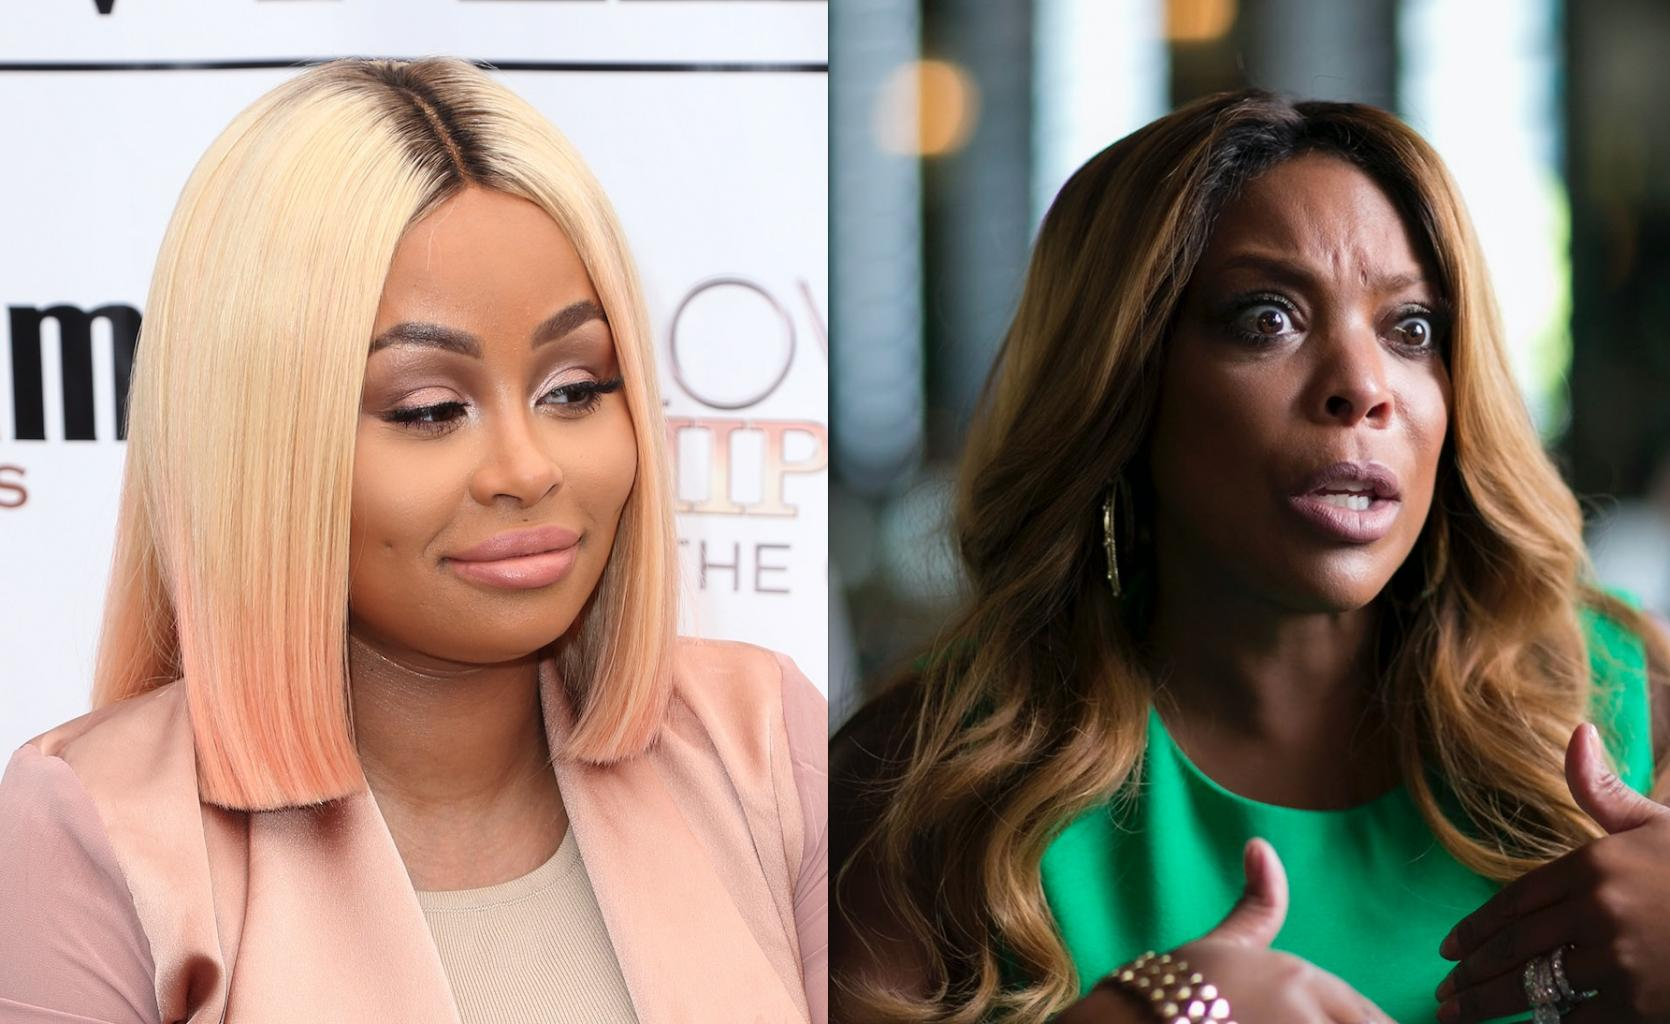 Blac Chyna Goes Off On Wendy Williams After Talk Show Tirade